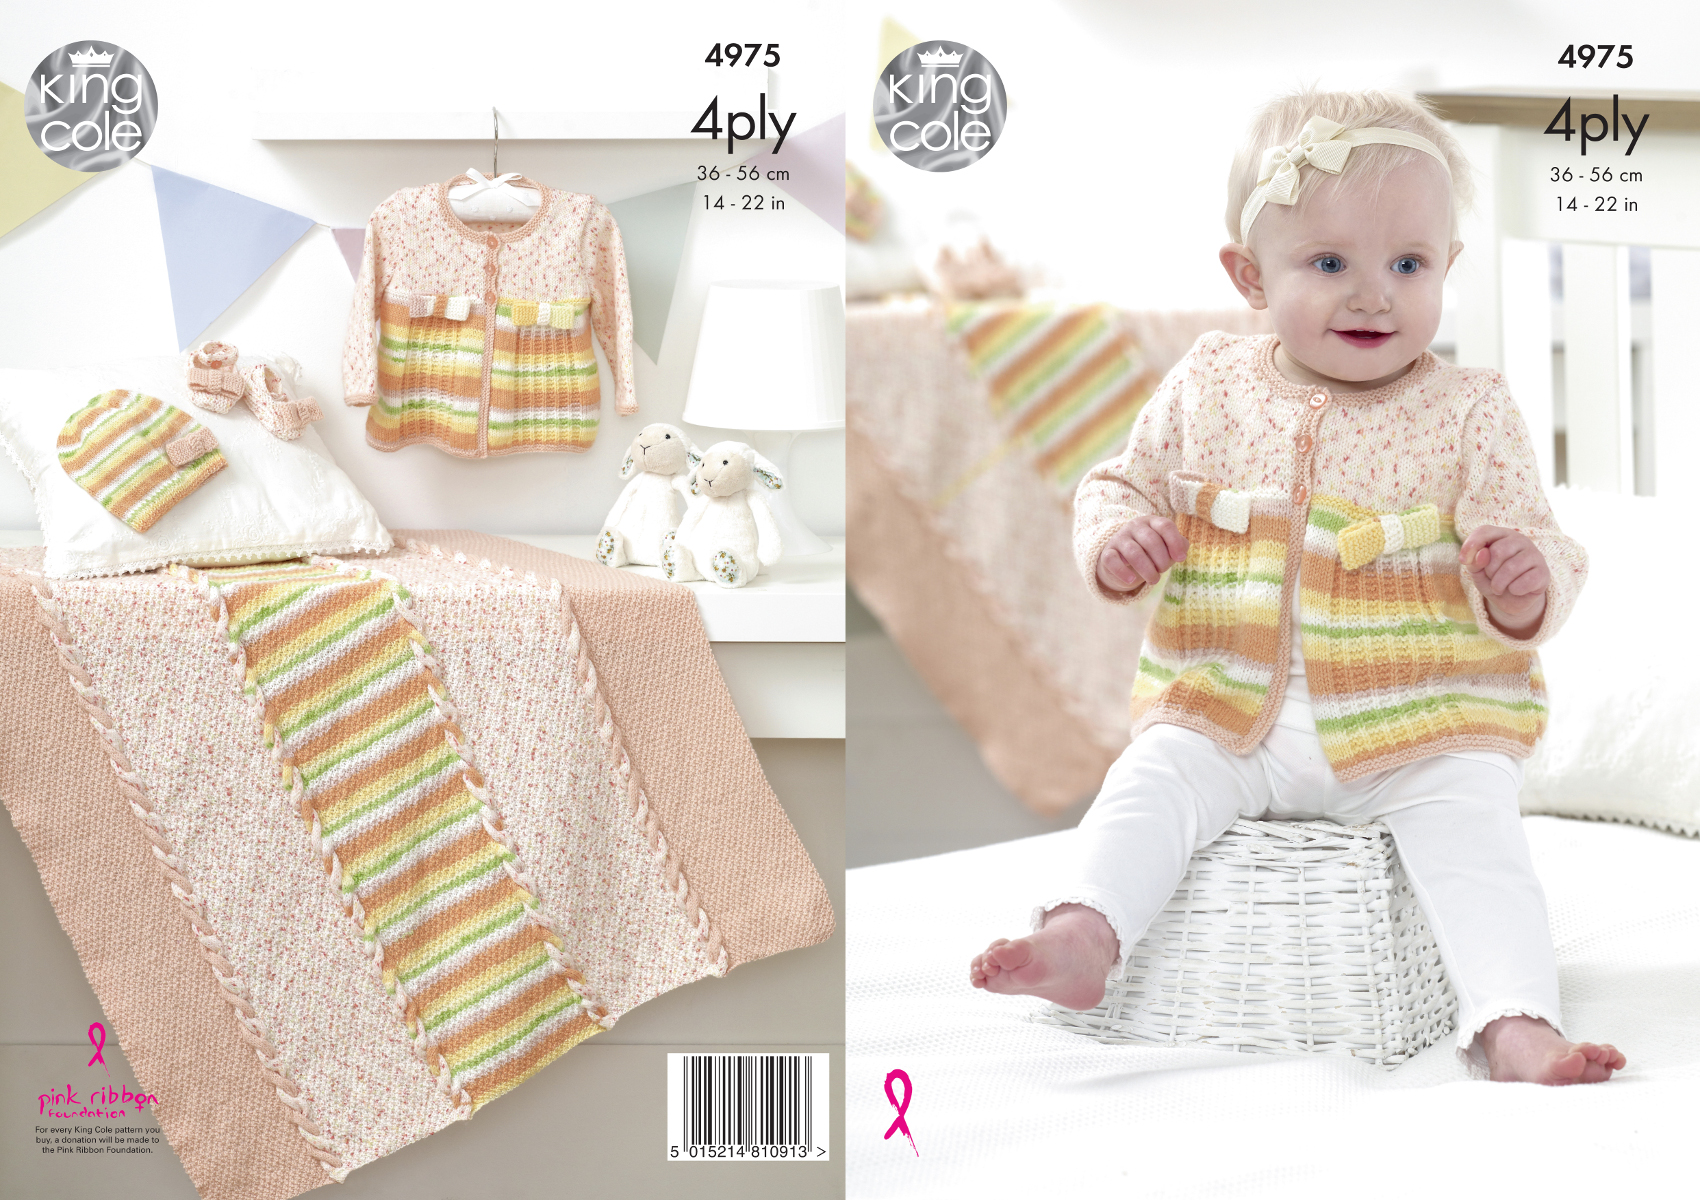 Baby knitting pattern jacket hat shoes blanket king cole big baby knitting pattern jacket hat shoes blanket king cole big value 4 ply 4975 bankloansurffo Image collections